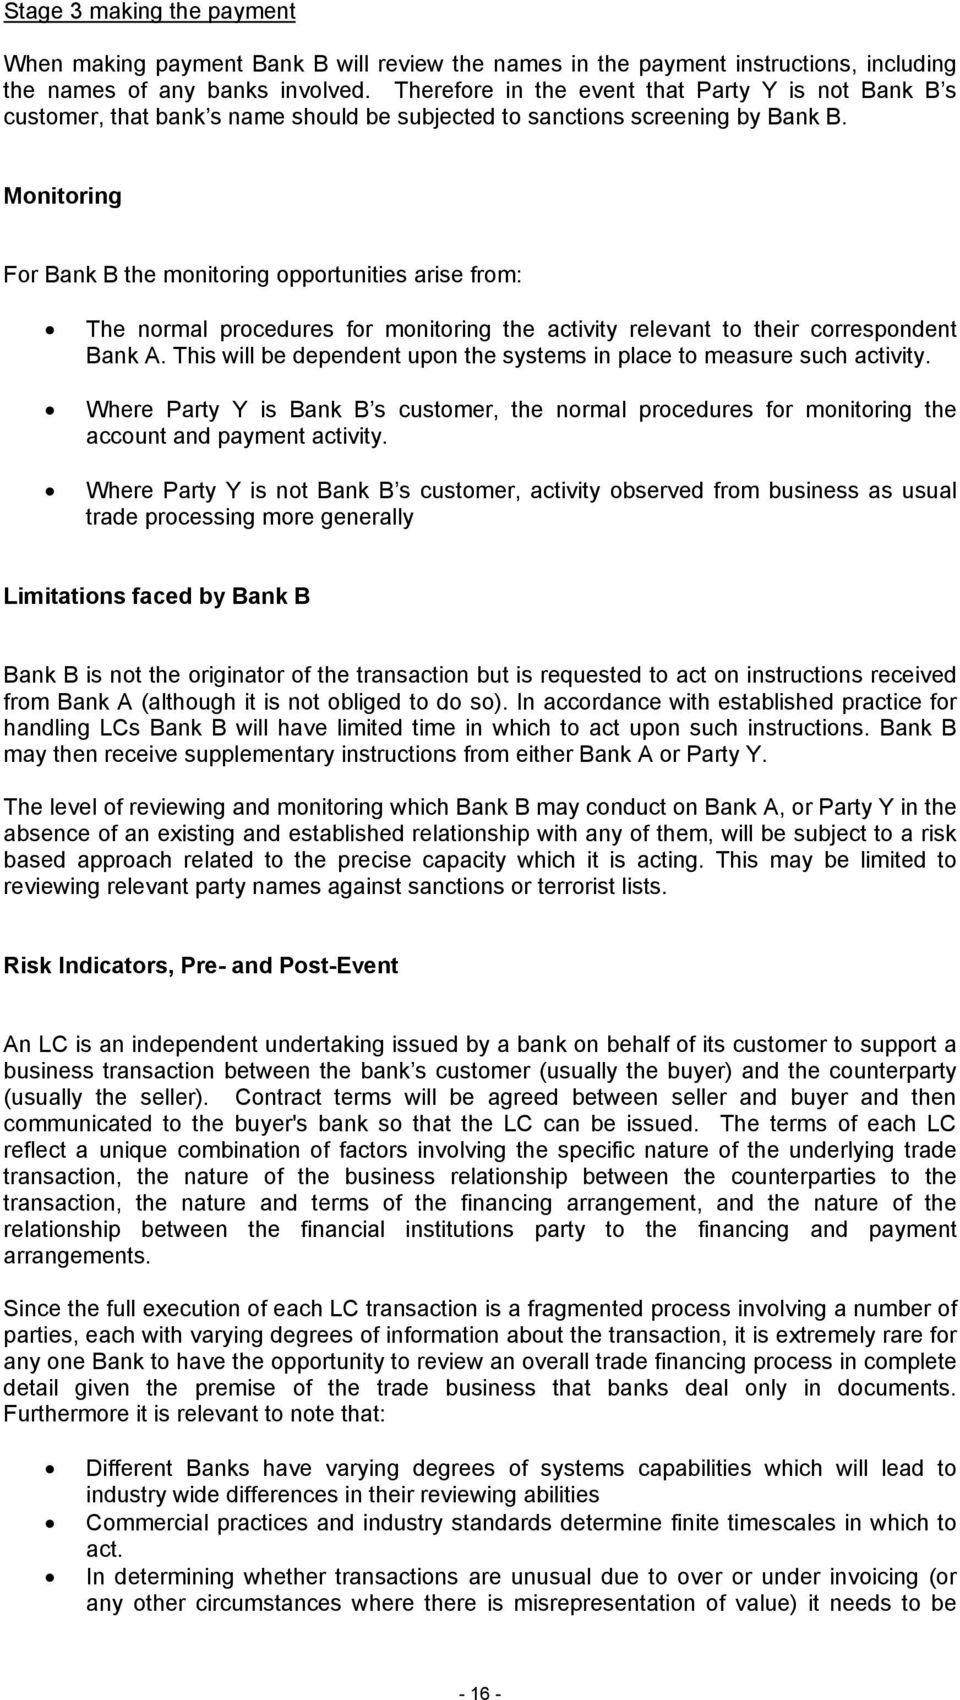 Monitoring For Bank B the monitoring opportunities arise from: The normal procedures for monitoring the activity relevant to their correspondent Bank A.